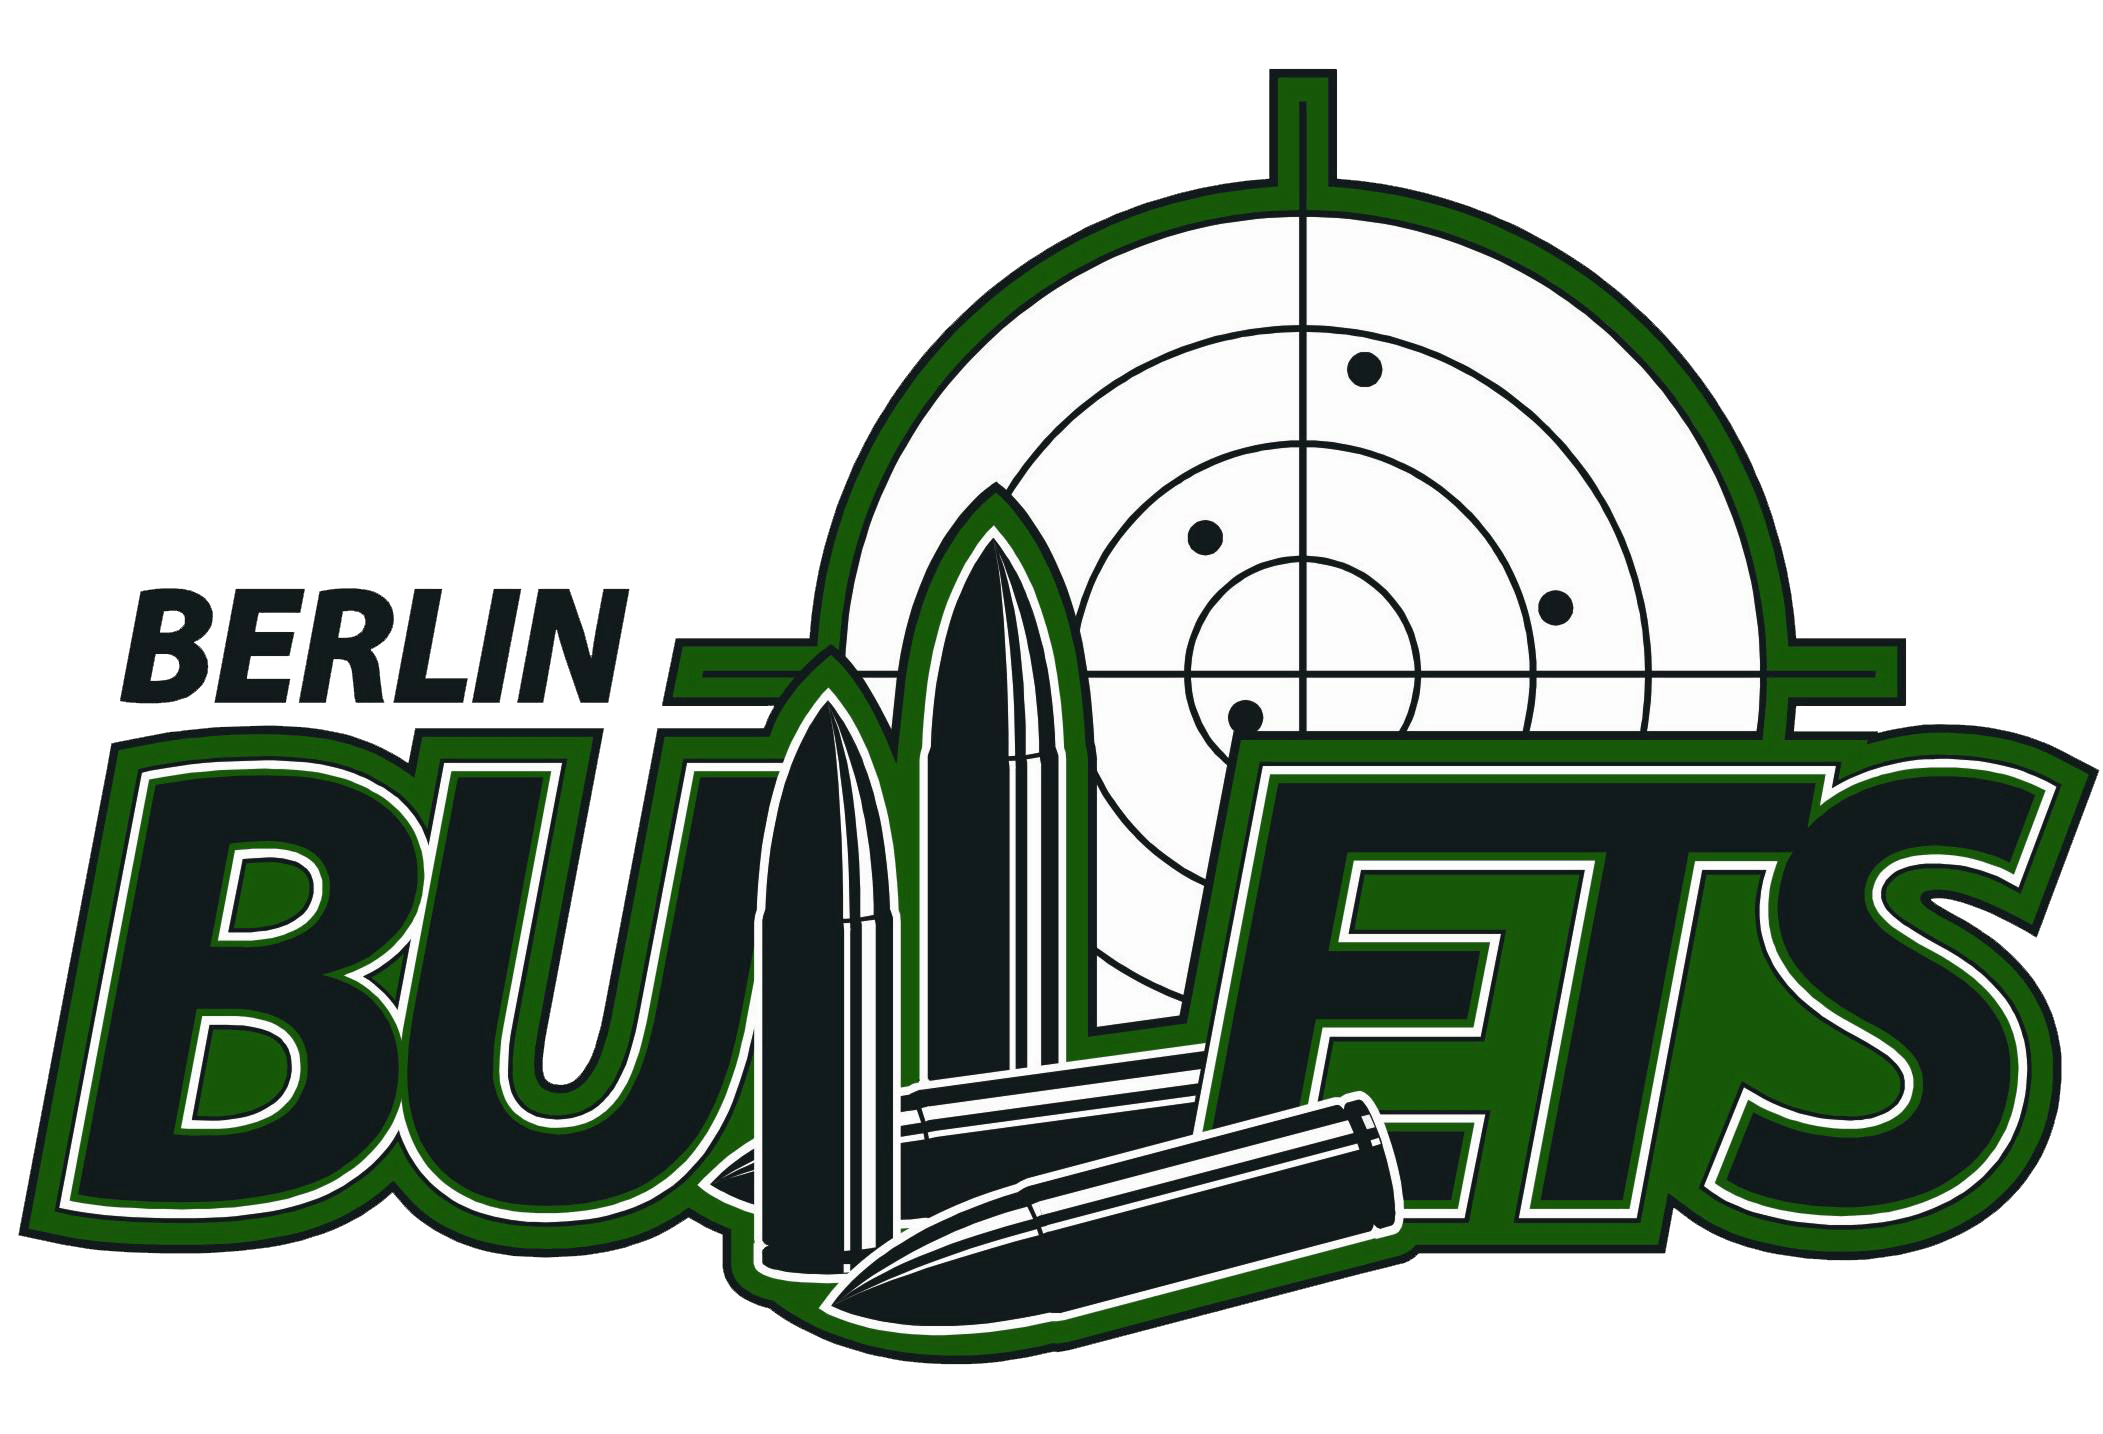 Berlin-Bullets-Logo-transparent-1.png